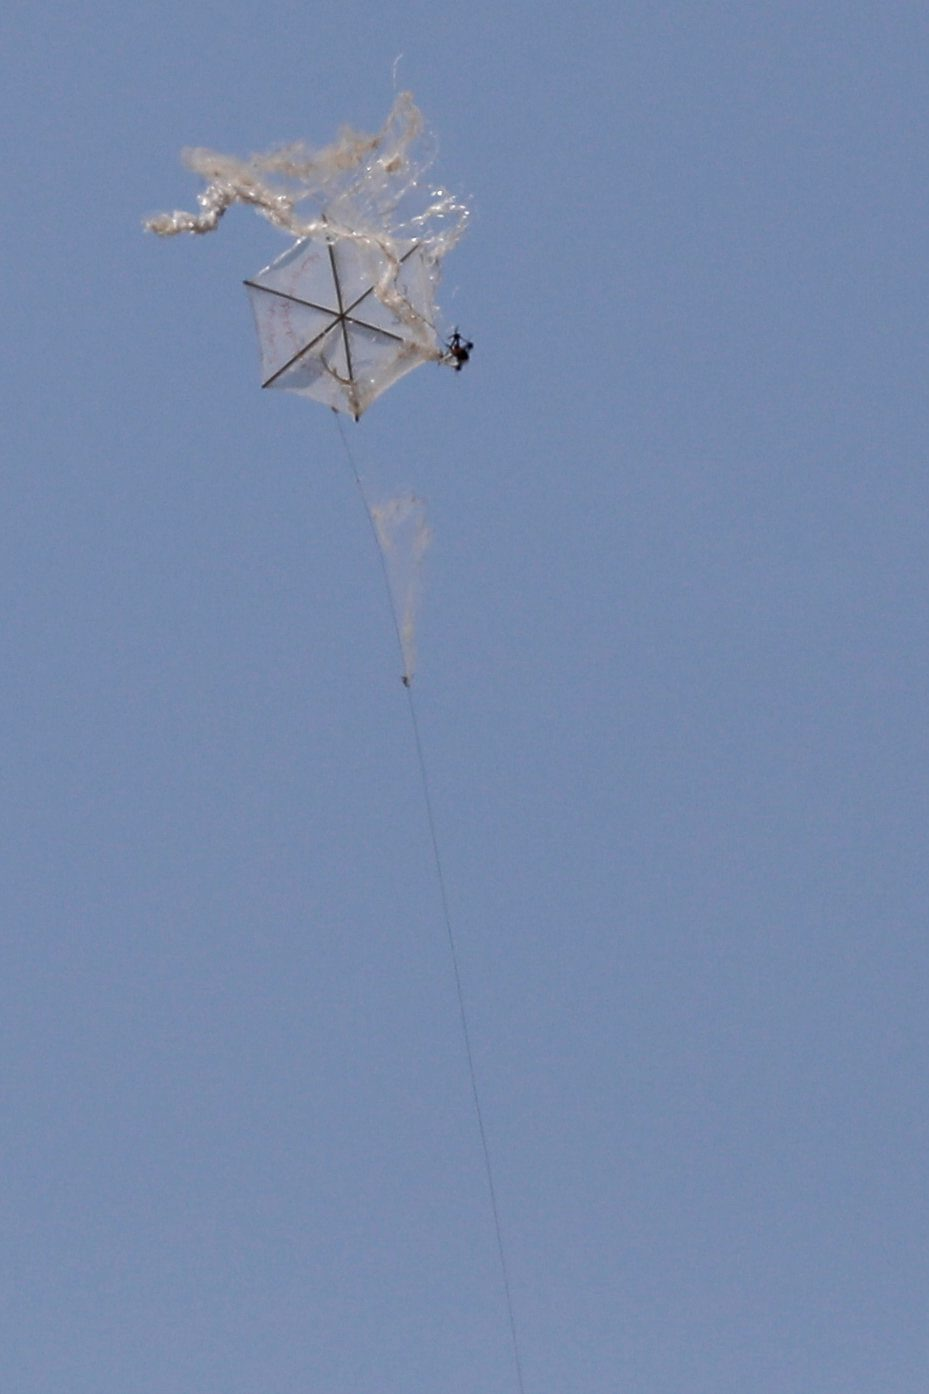 An Israeli drone intercepts a Palestinian kite in an area where kites and balloons have caused blazes, on the Israeli side of the border between Israel and the Gaza Strip, June 8, 2018. REUTERS/Amir Cohen